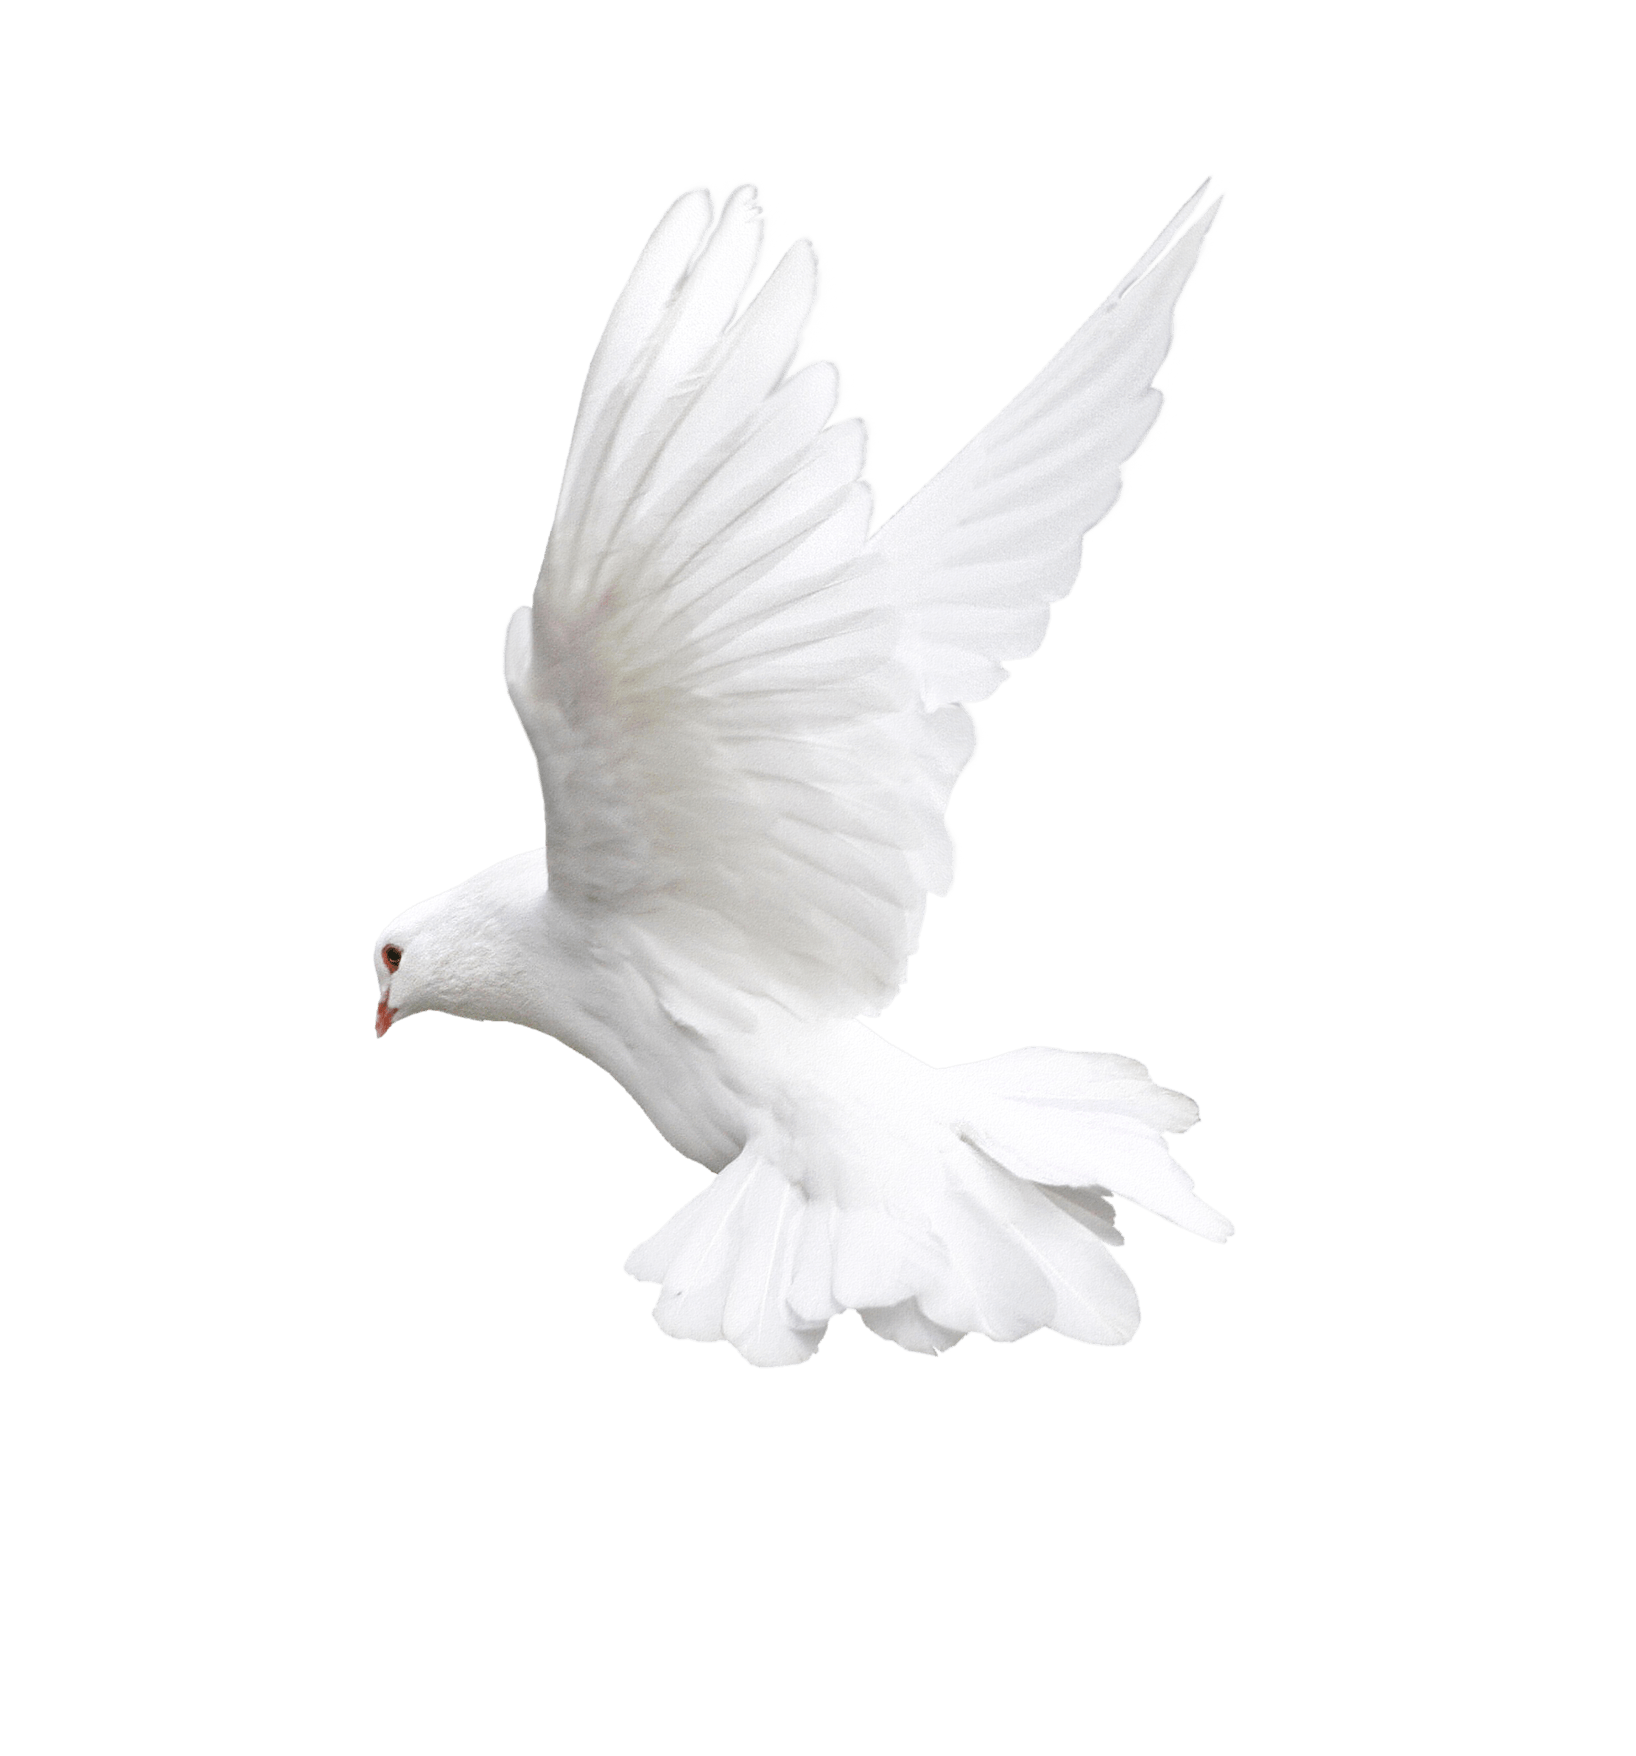 White Flying Pigeon Png Image PNG Image